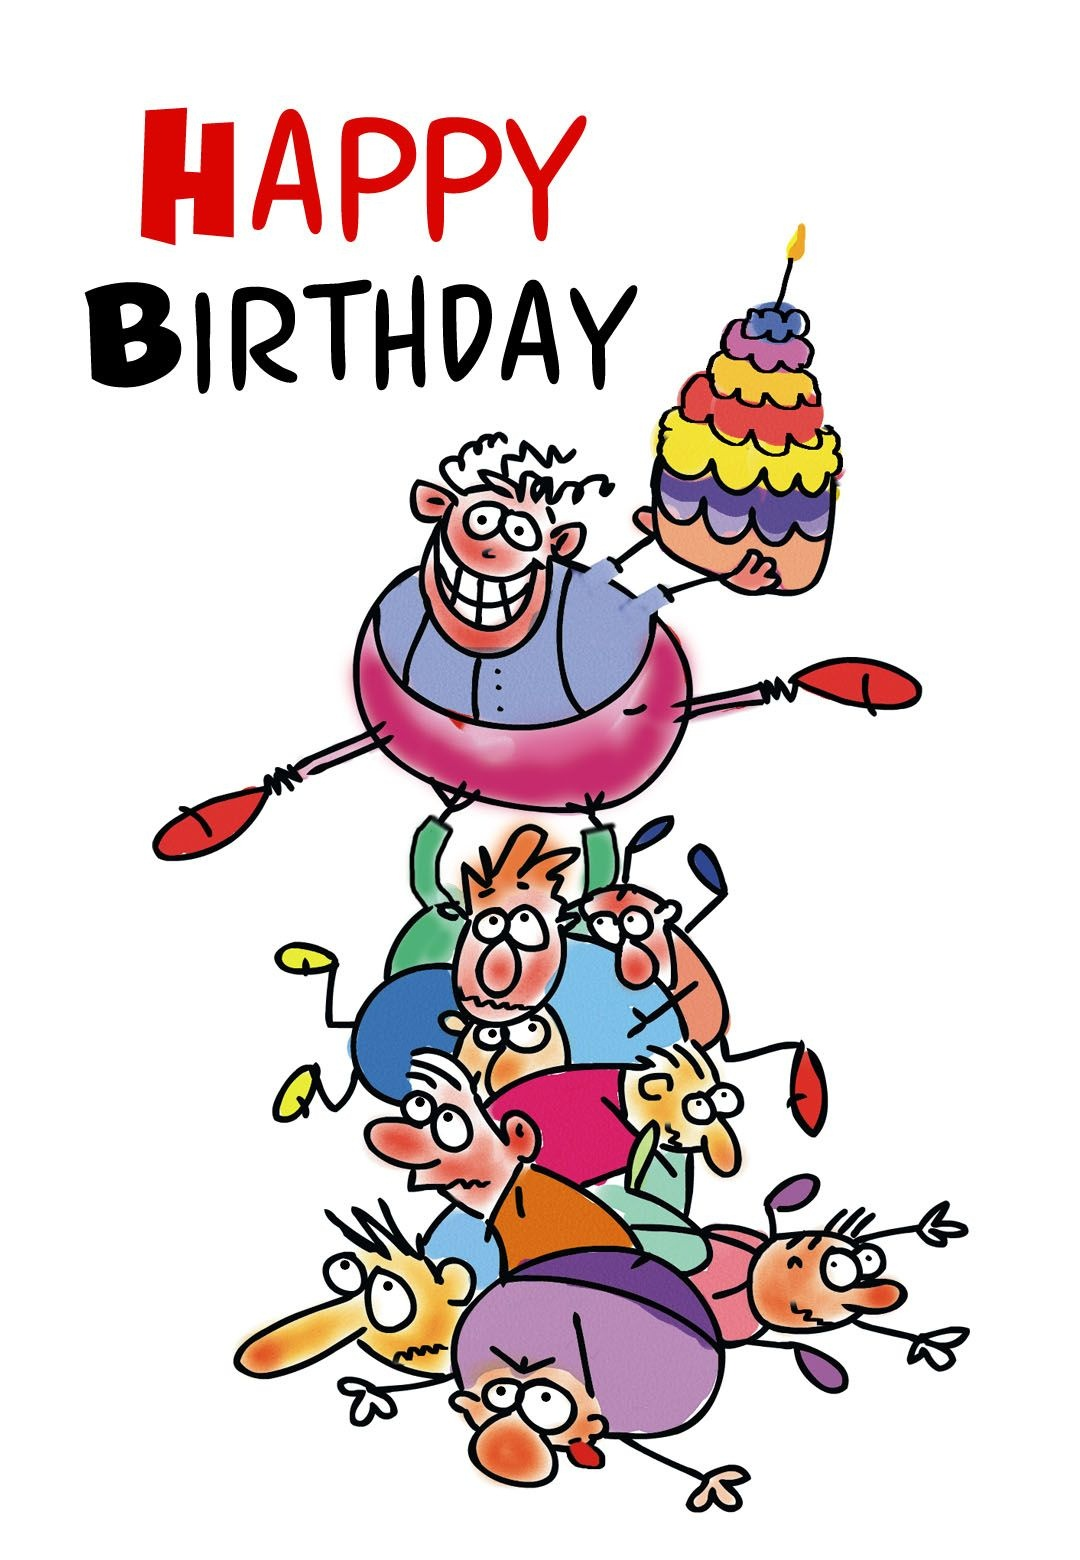 Free Printable Funny Birthday Greeting Card | Gifts To Make | Free - Free Printable Funny Birthday Cards For Coworkers